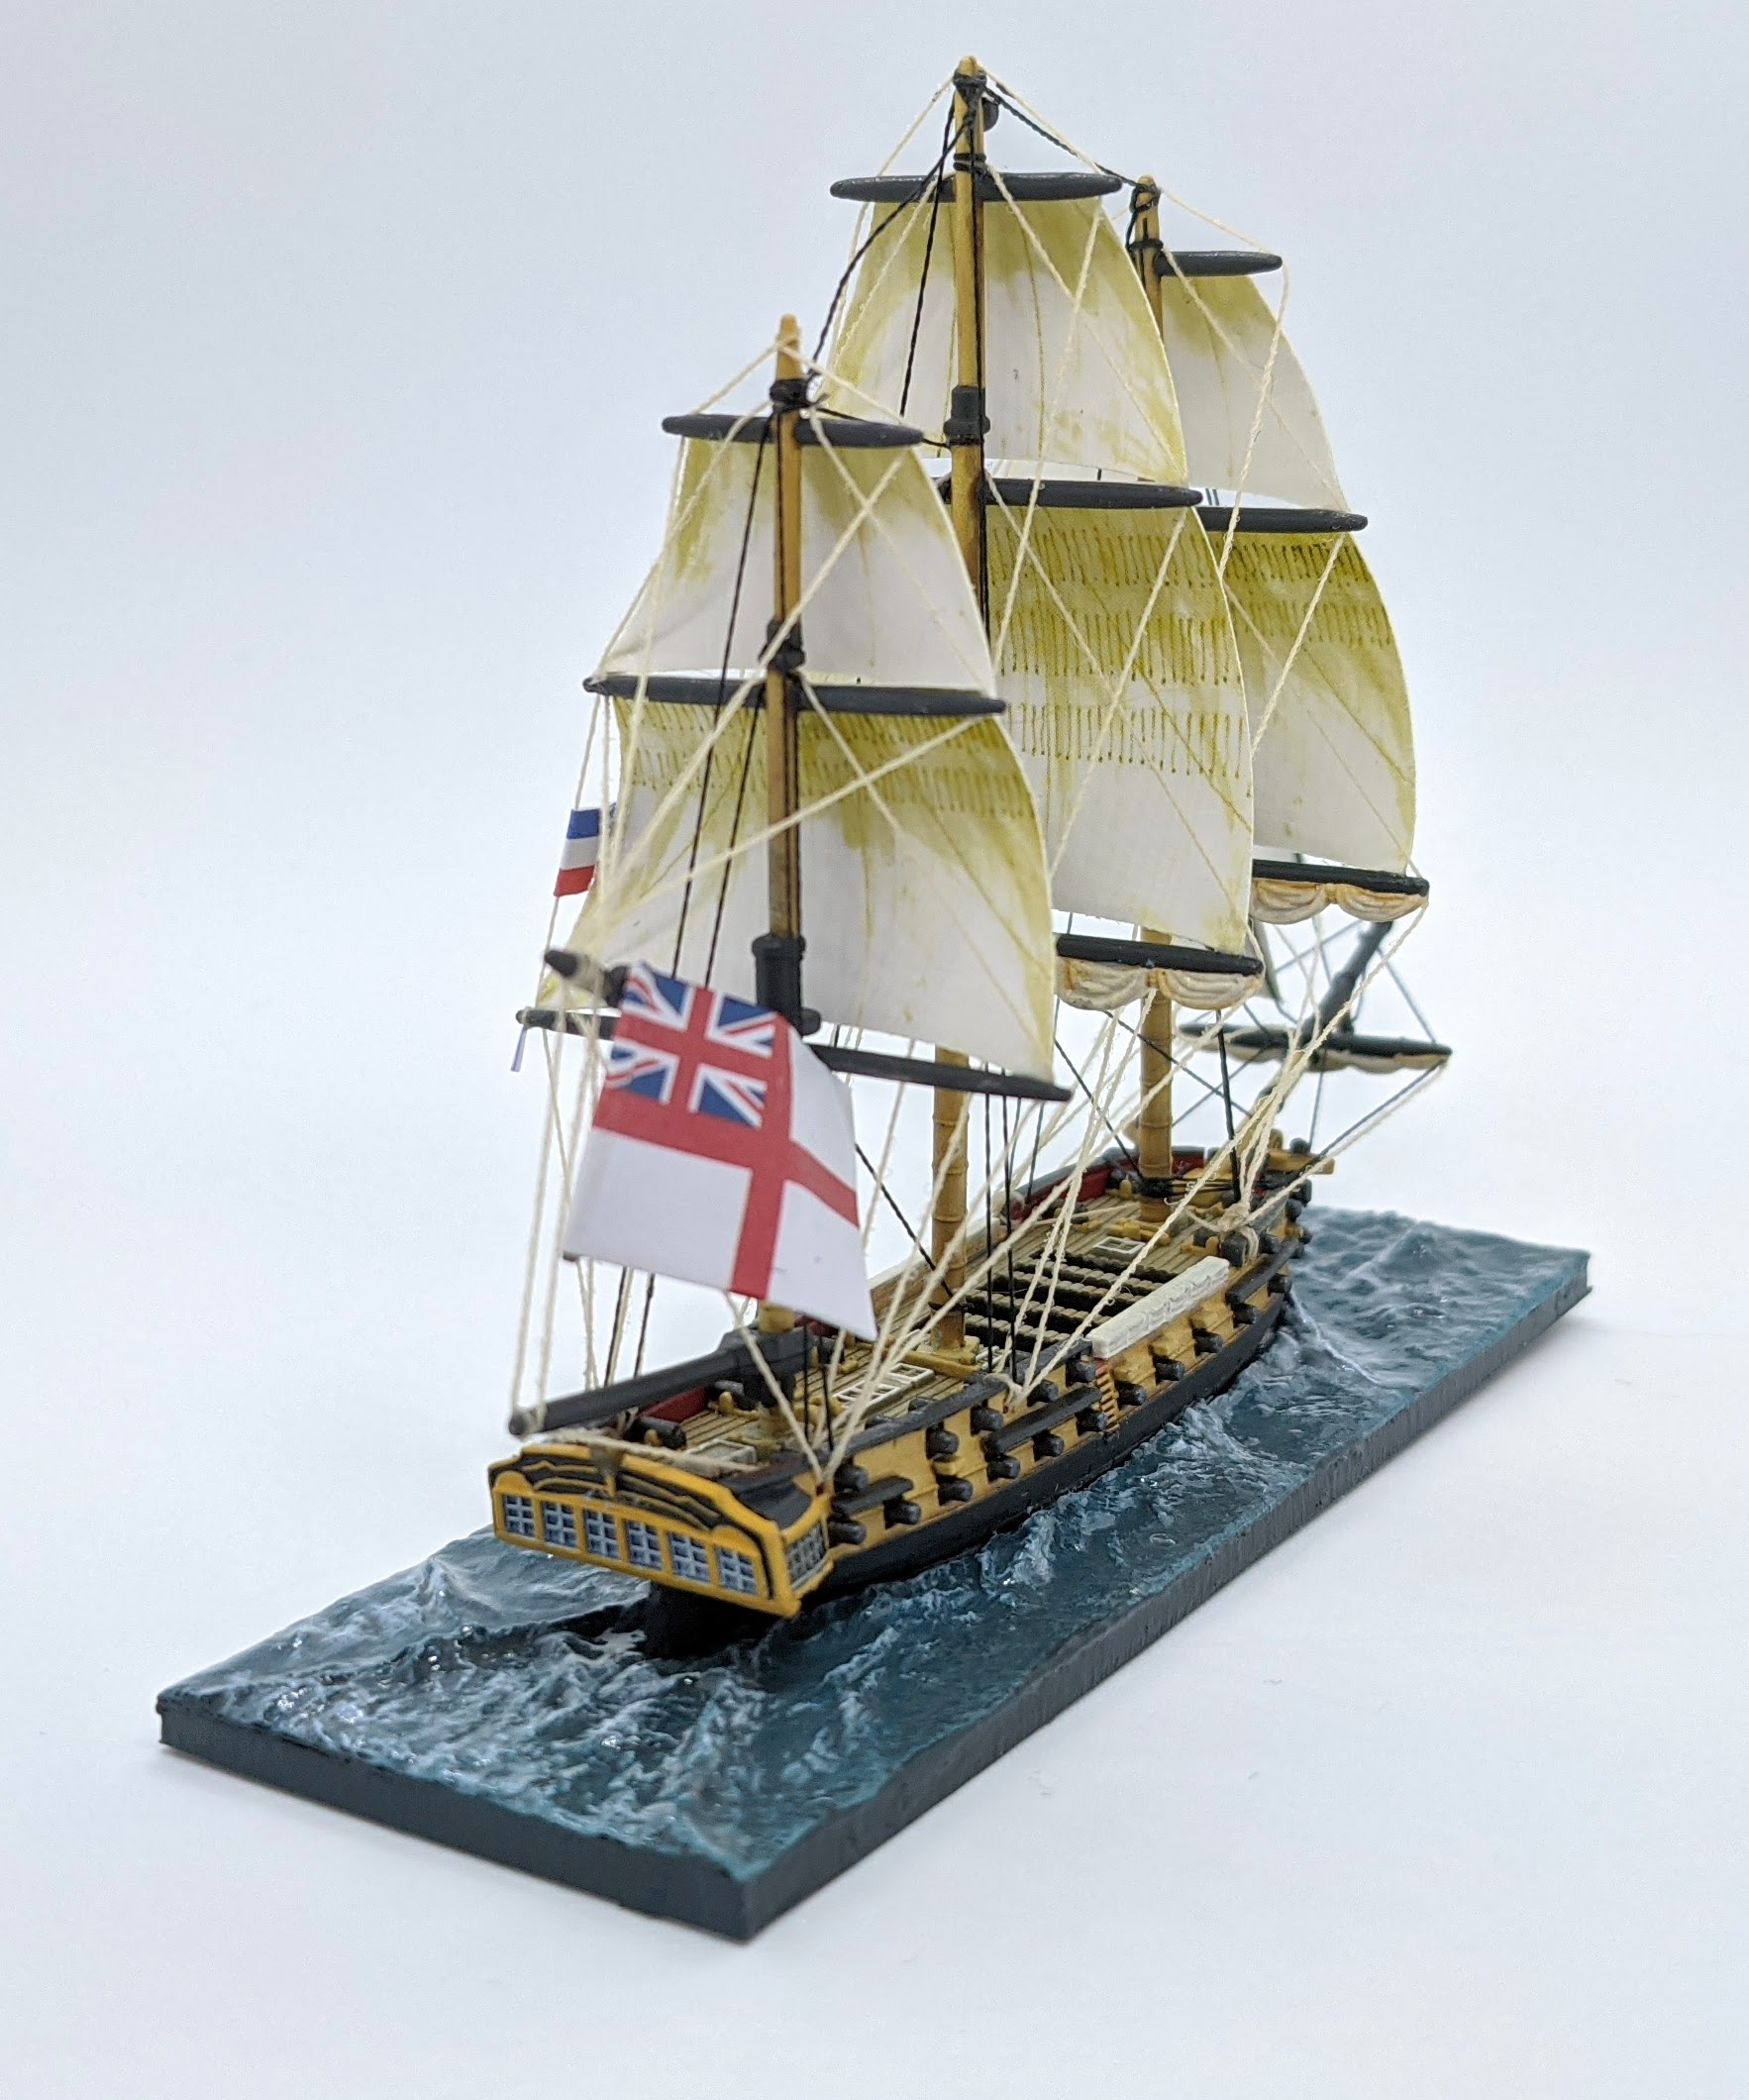 Post 1800 Act of Union Frigate sailing in the White squadron. The flag is attached to a magnet at the top. Part of the paperclip can be seen at the bottom of the flag.